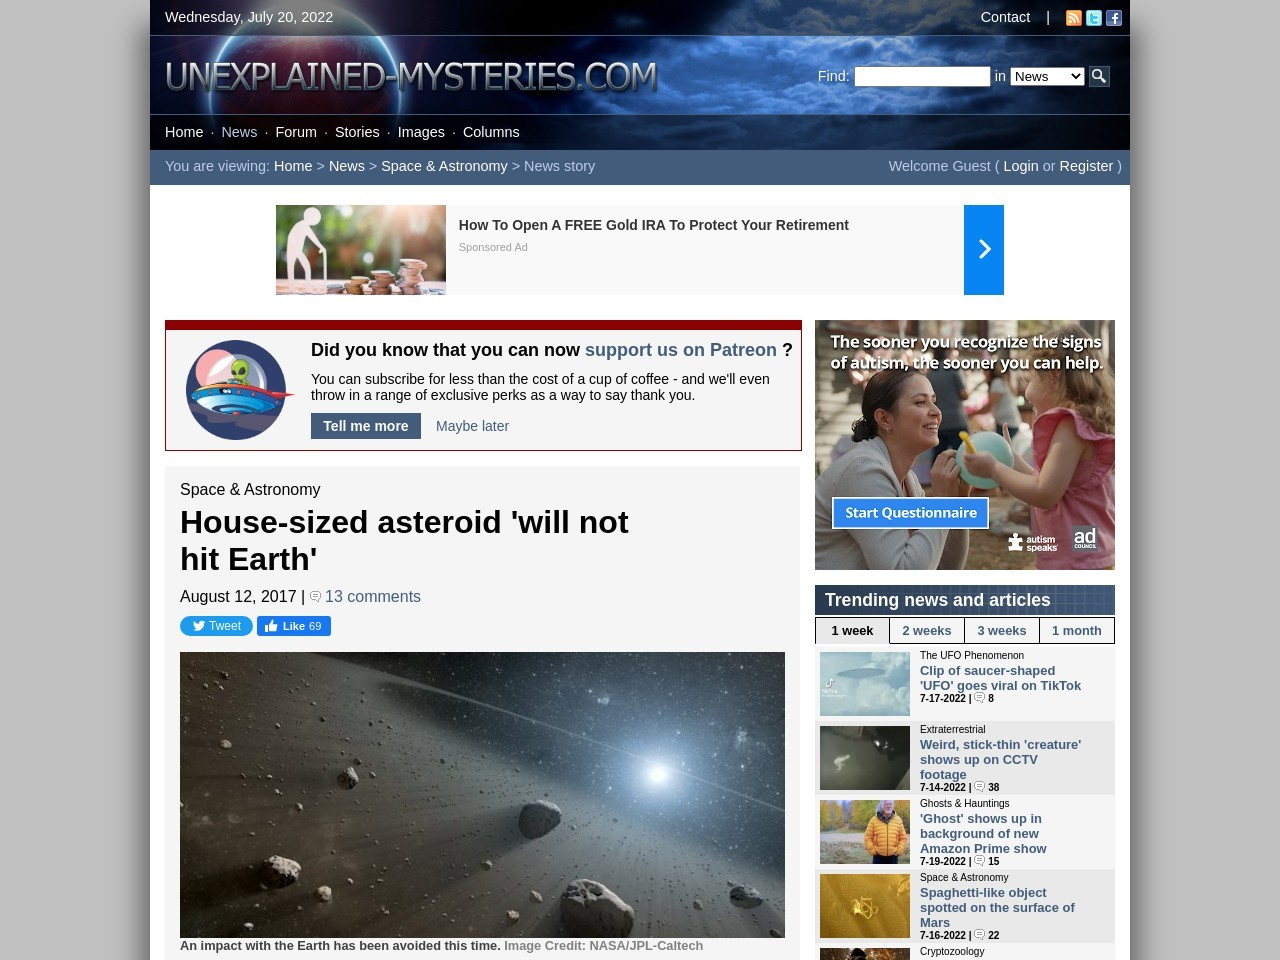 House-sized asteroid 'will not hit Earth'